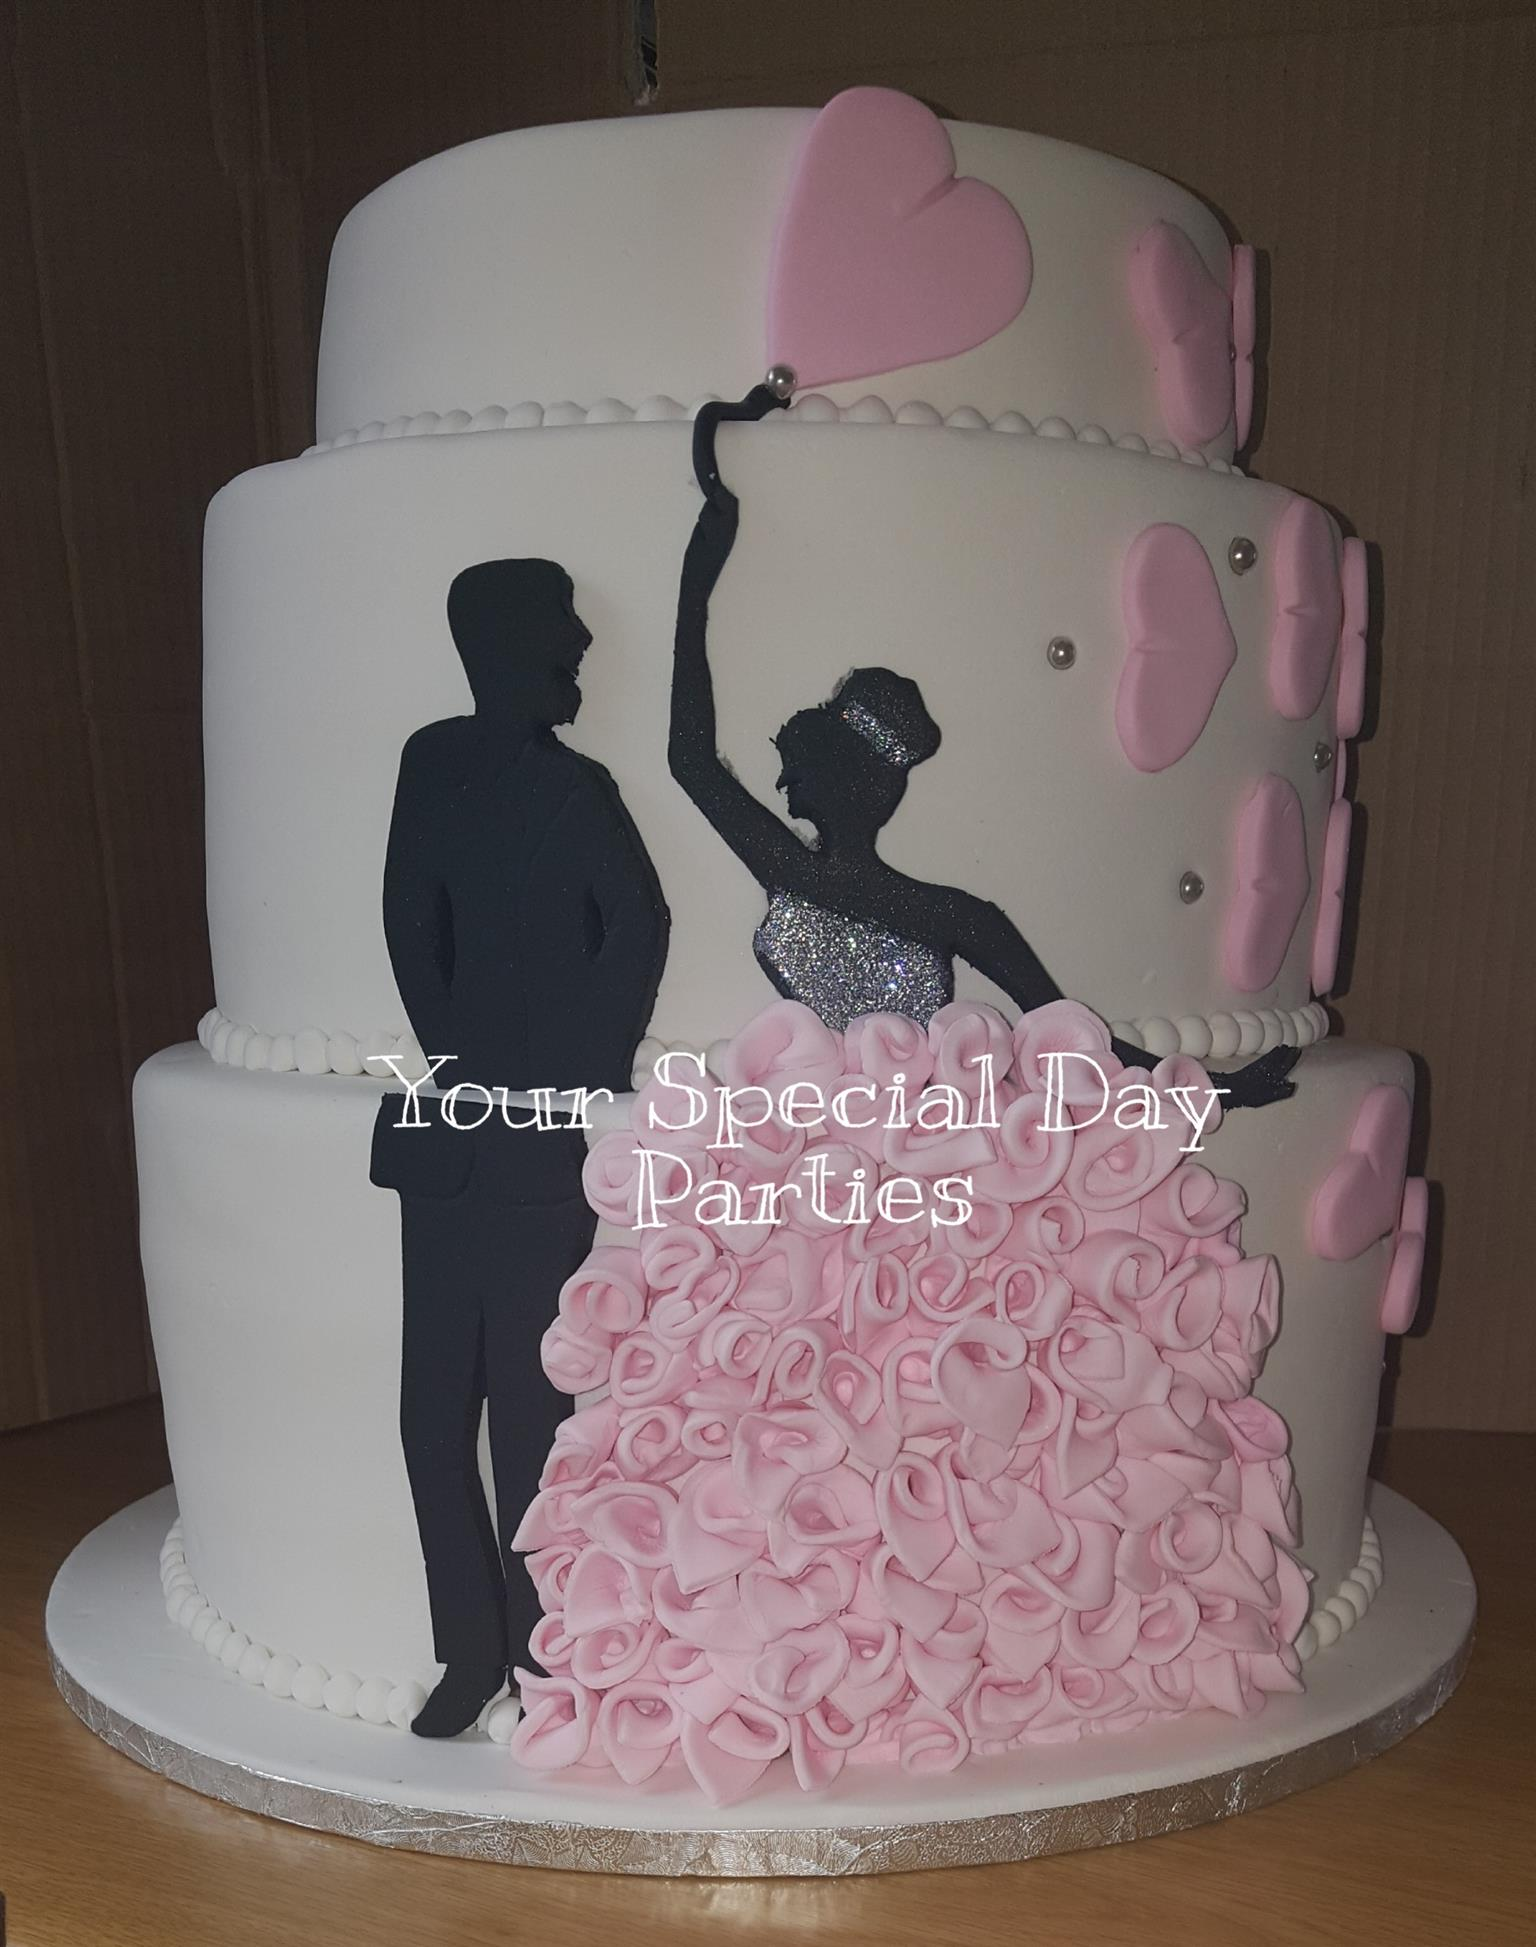 Your Special Day Parties, Cakes, Occasions